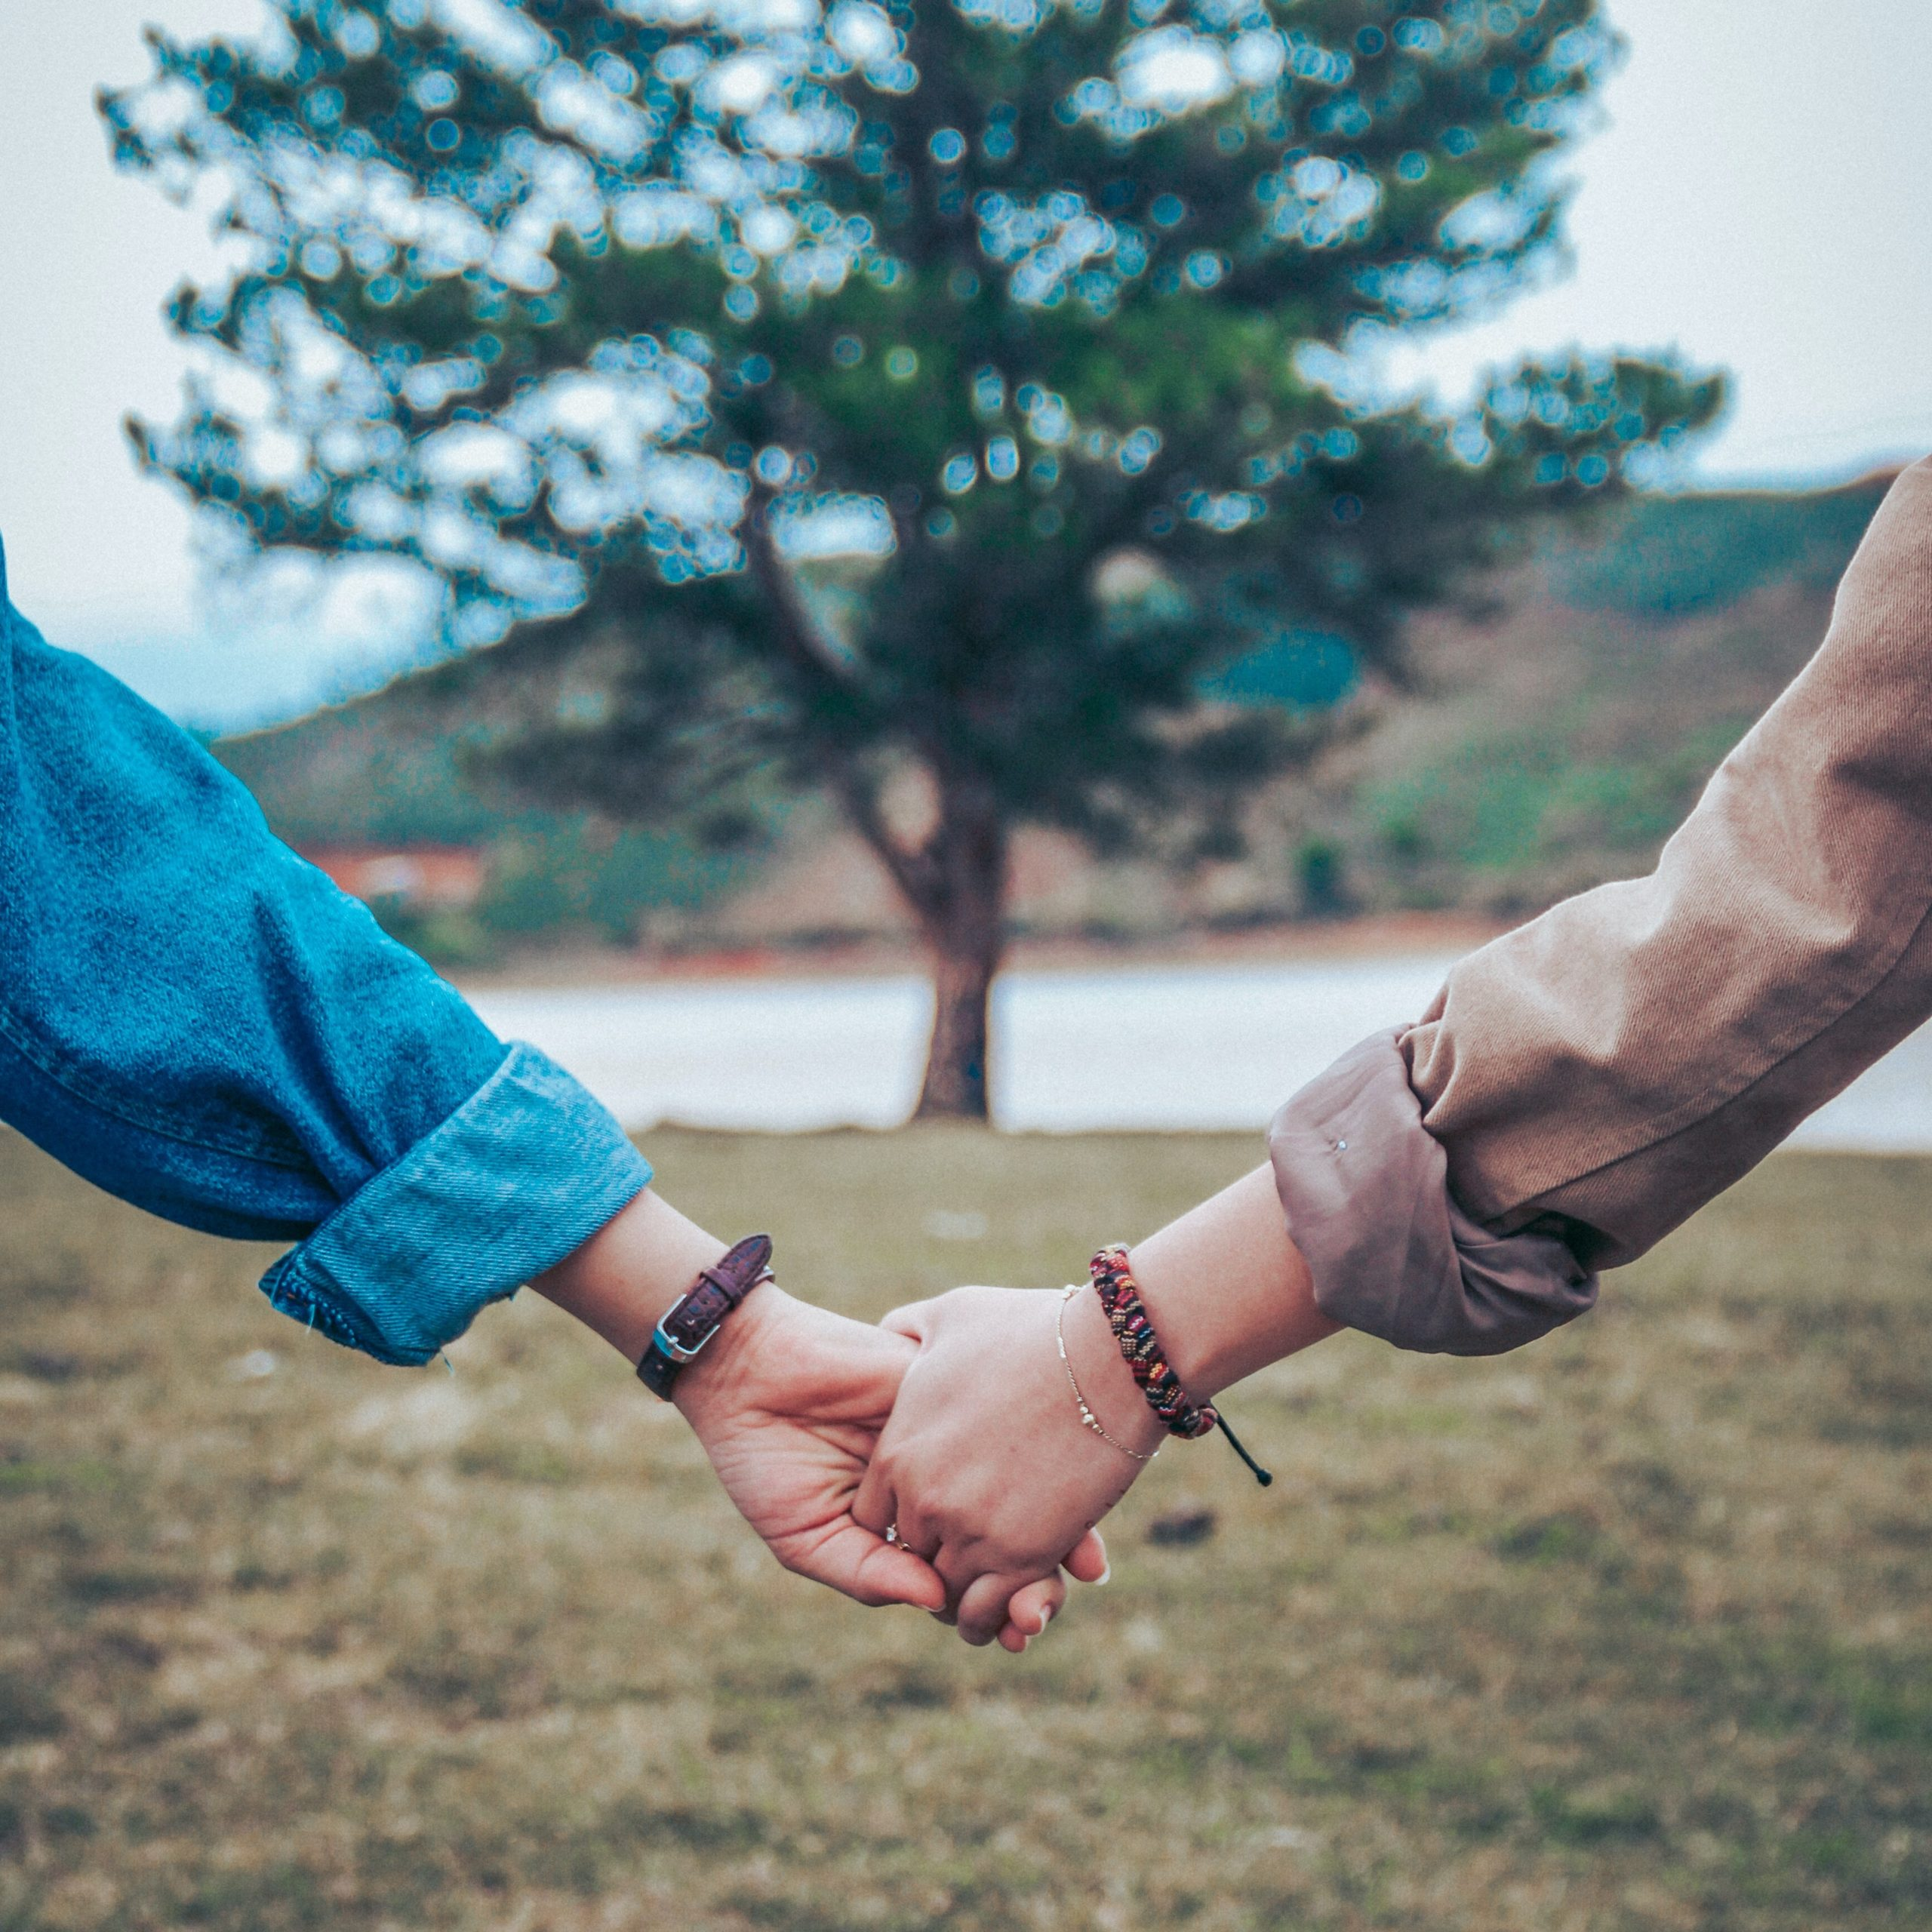 man and woman holding hands walking towards a tree and grateful for their relationship with natural living